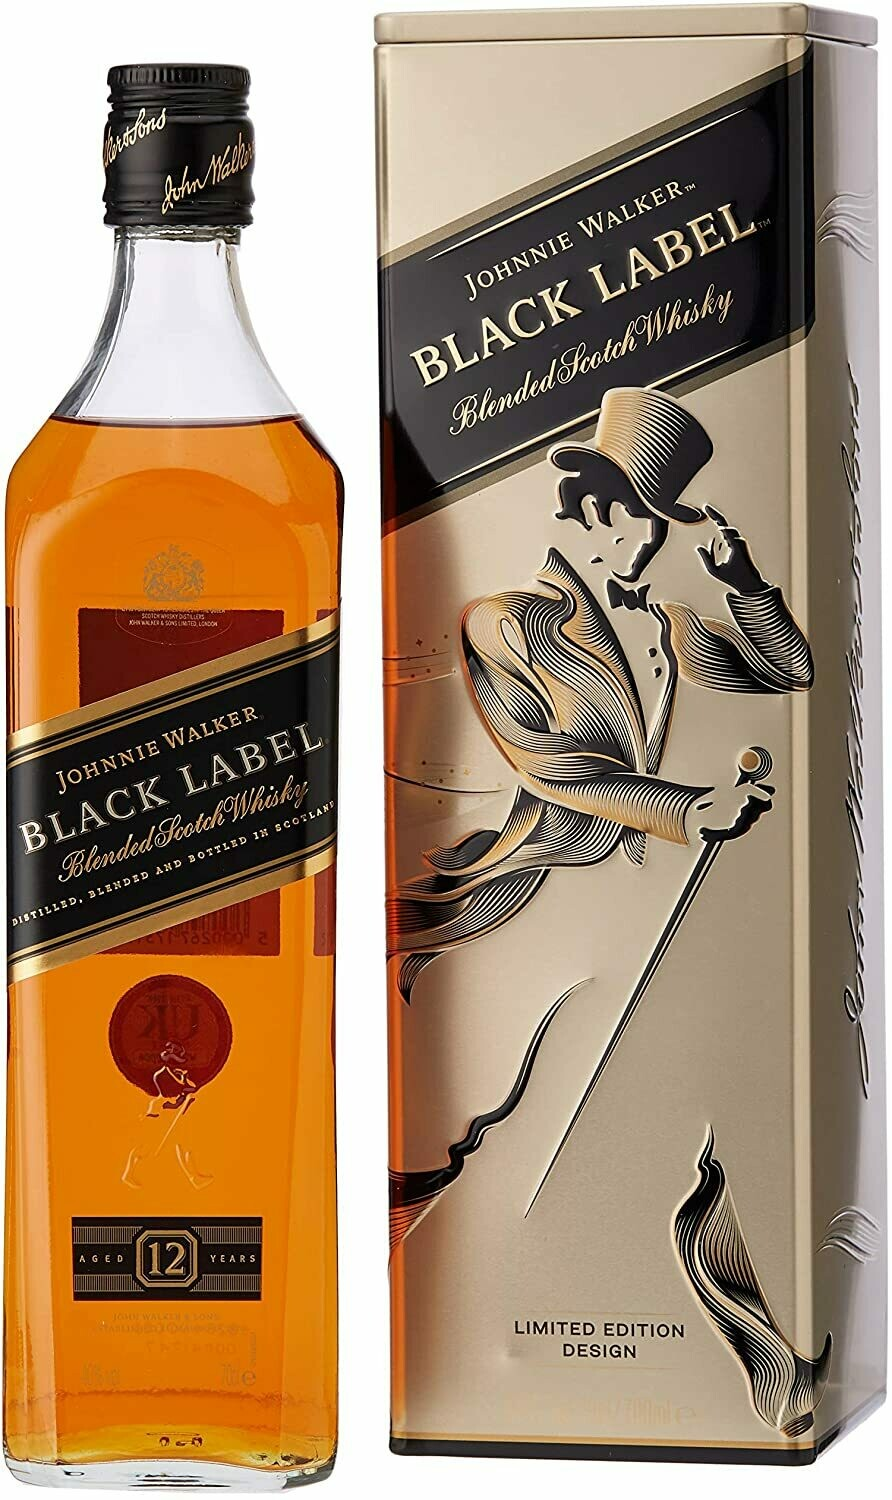 Johnnie Walker 'Black Label 12 Years Old' Blended Scotch Whisky (Limited Edition Metal Box)